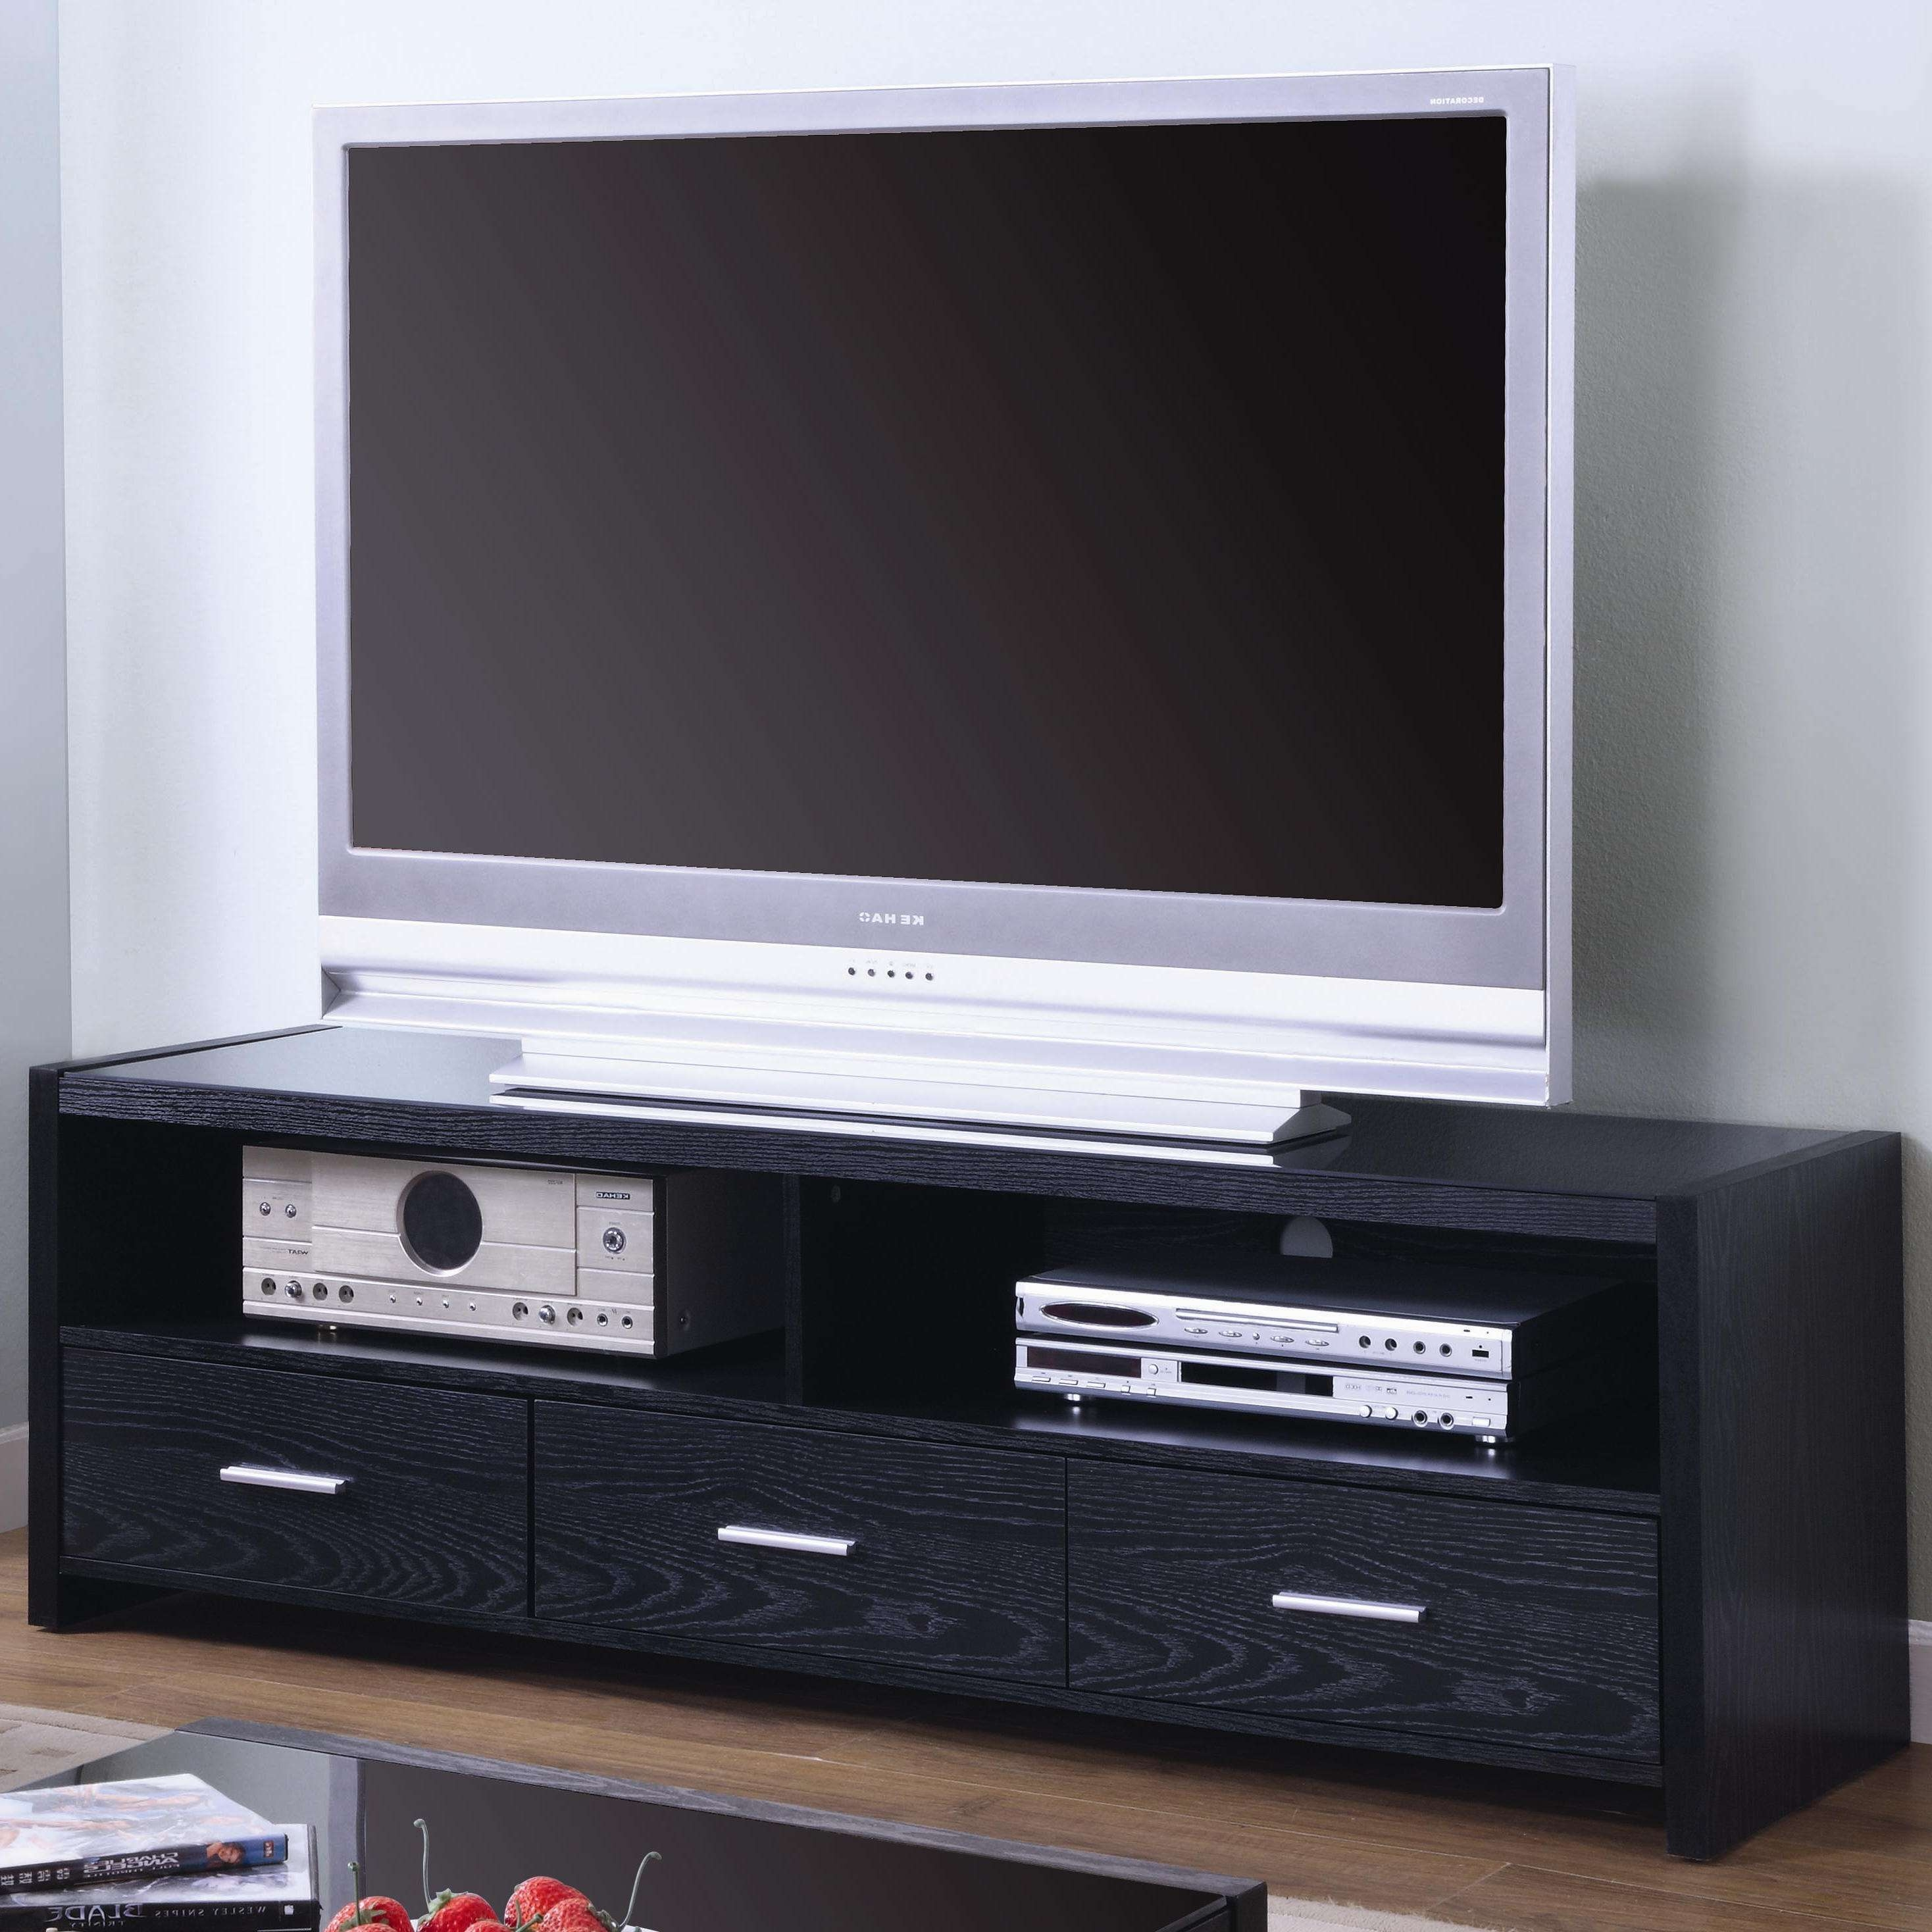 Coaster Tv Stands Contemporary Media Console With Shelves And With Silver Tv Stands (View 4 of 15)